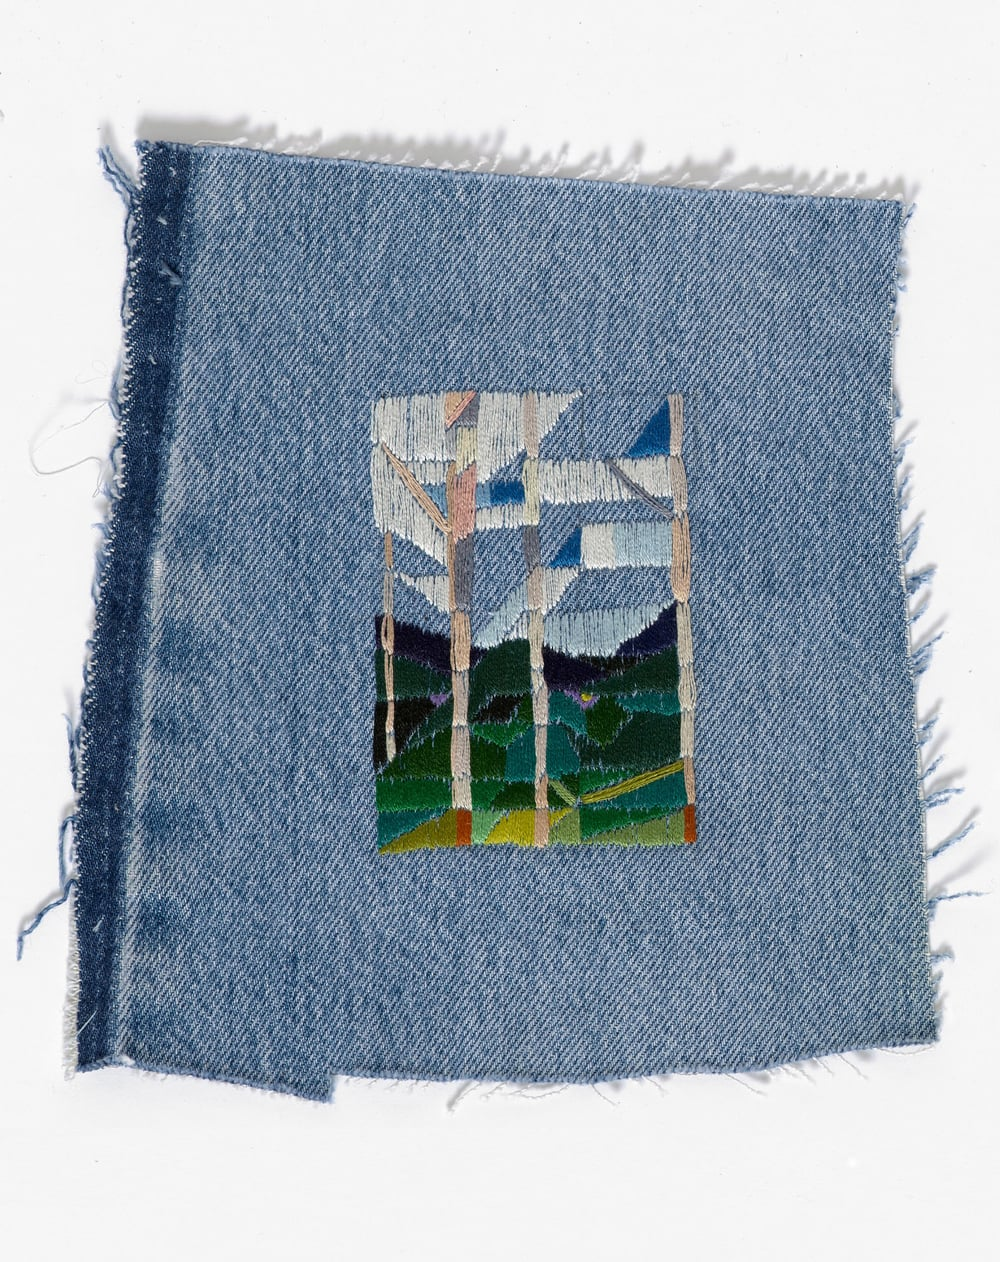 Return to the farm II 2015 Cotton thread on denim 18 x 20.5cm